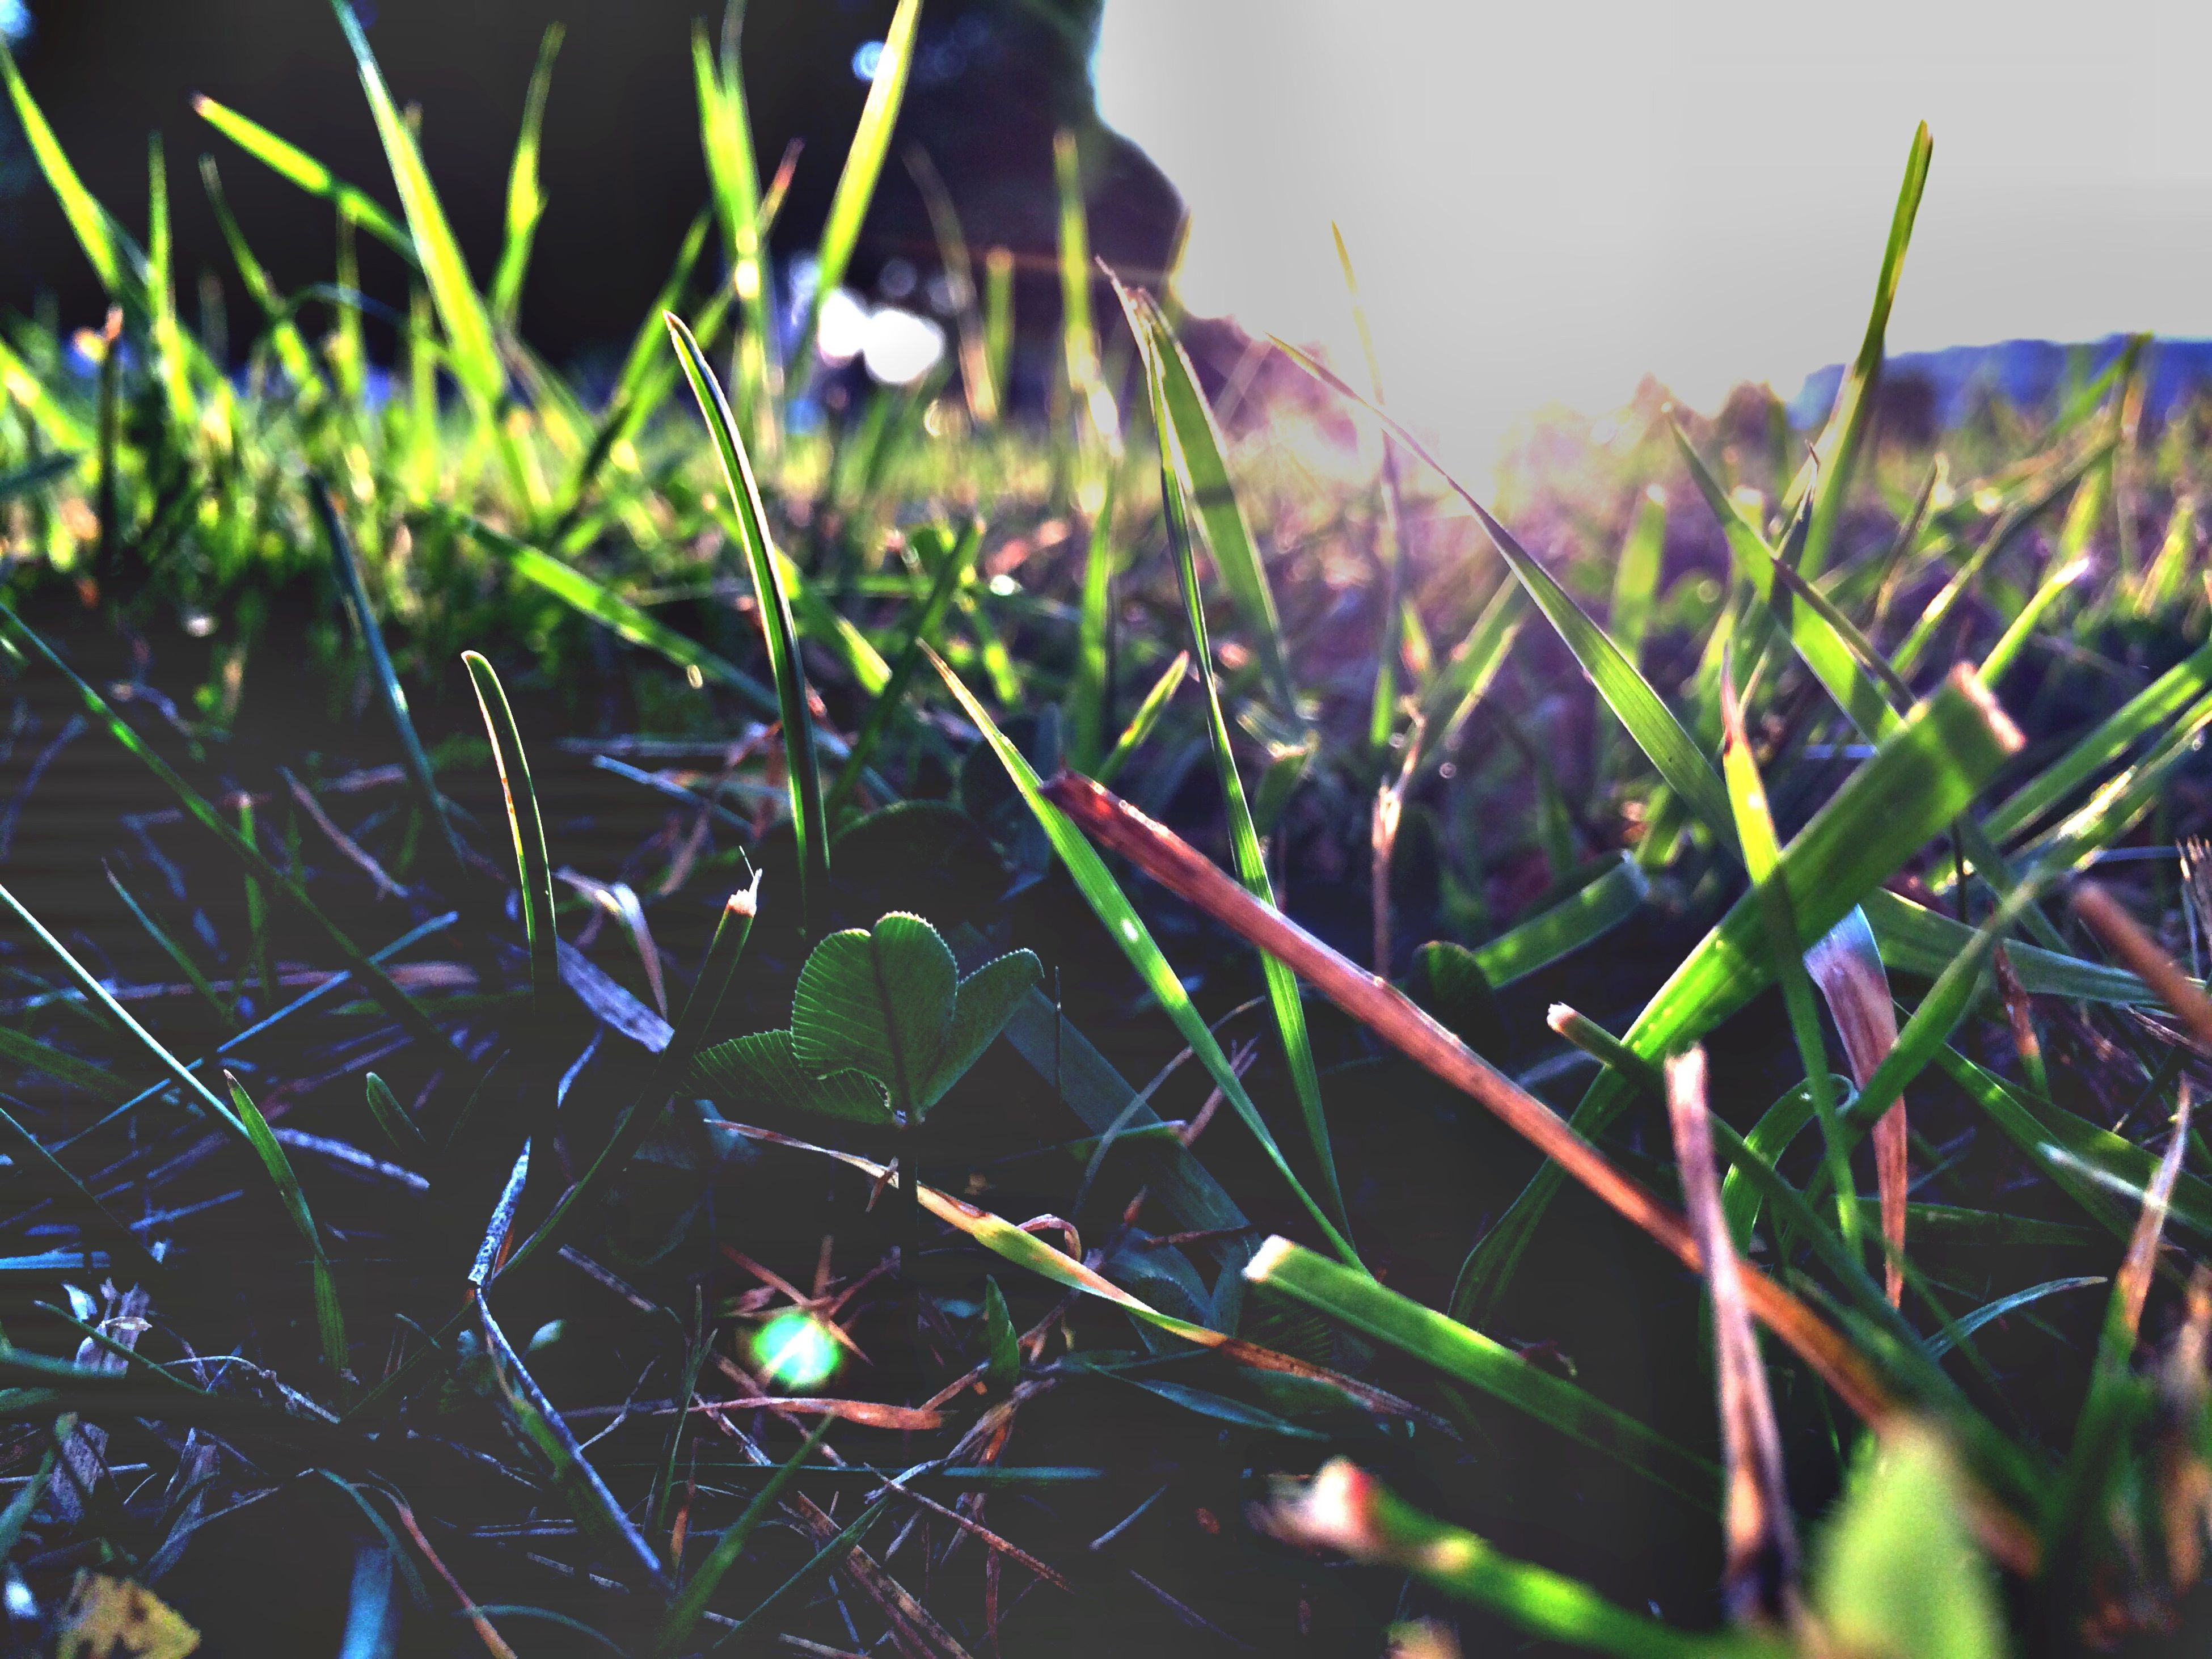 grass, close-up, plant, field, green color, focus on foreground, blade of grass, nature, growth, spider web, selective focus, beauty in nature, outdoors, water, day, tranquility, grassy, drop, sunlight, no people